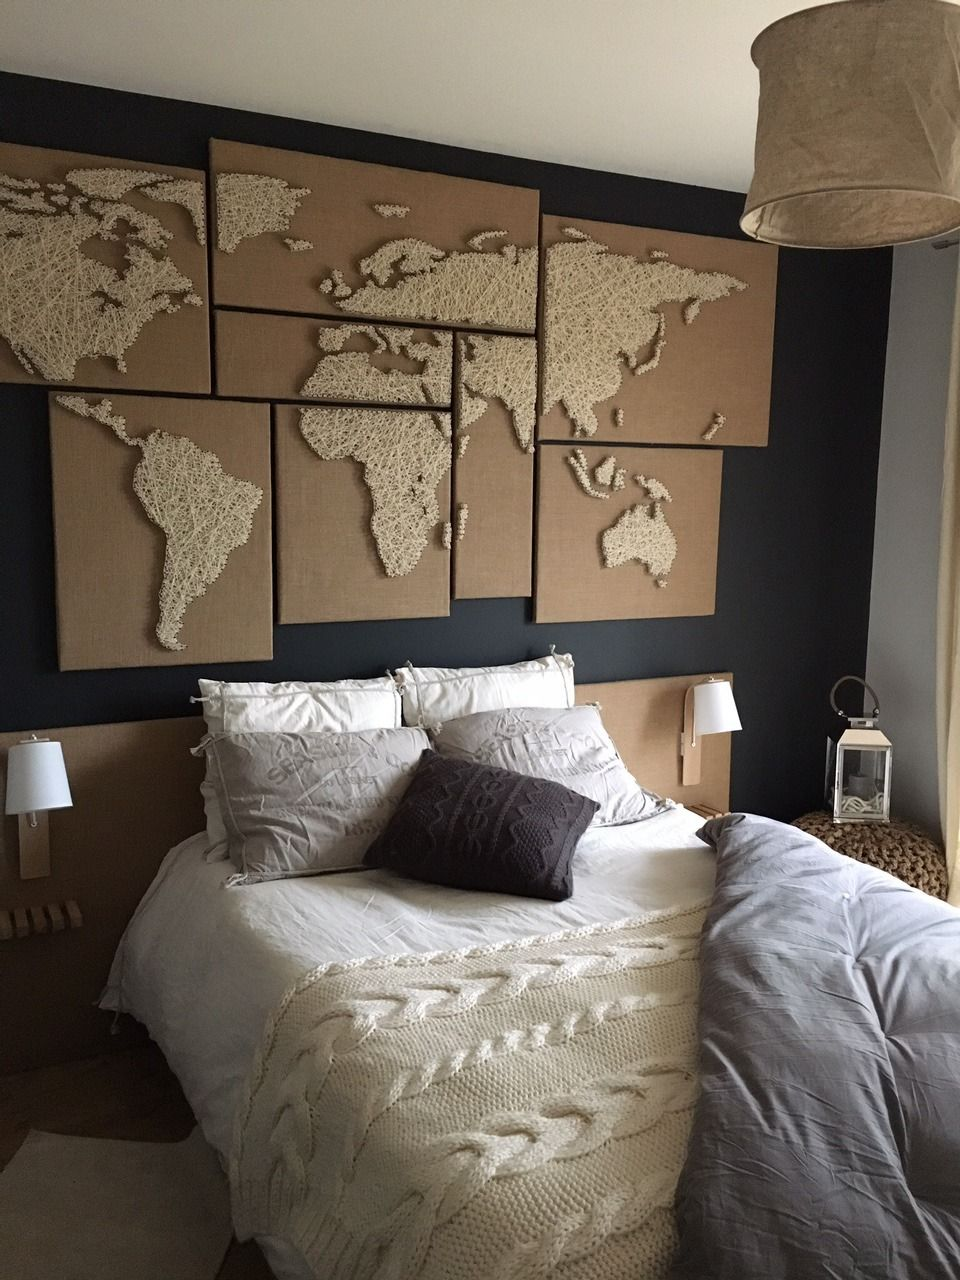 map monde en laine tendue et toile de jute d co pinterest map monde toile de jute et jute. Black Bedroom Furniture Sets. Home Design Ideas